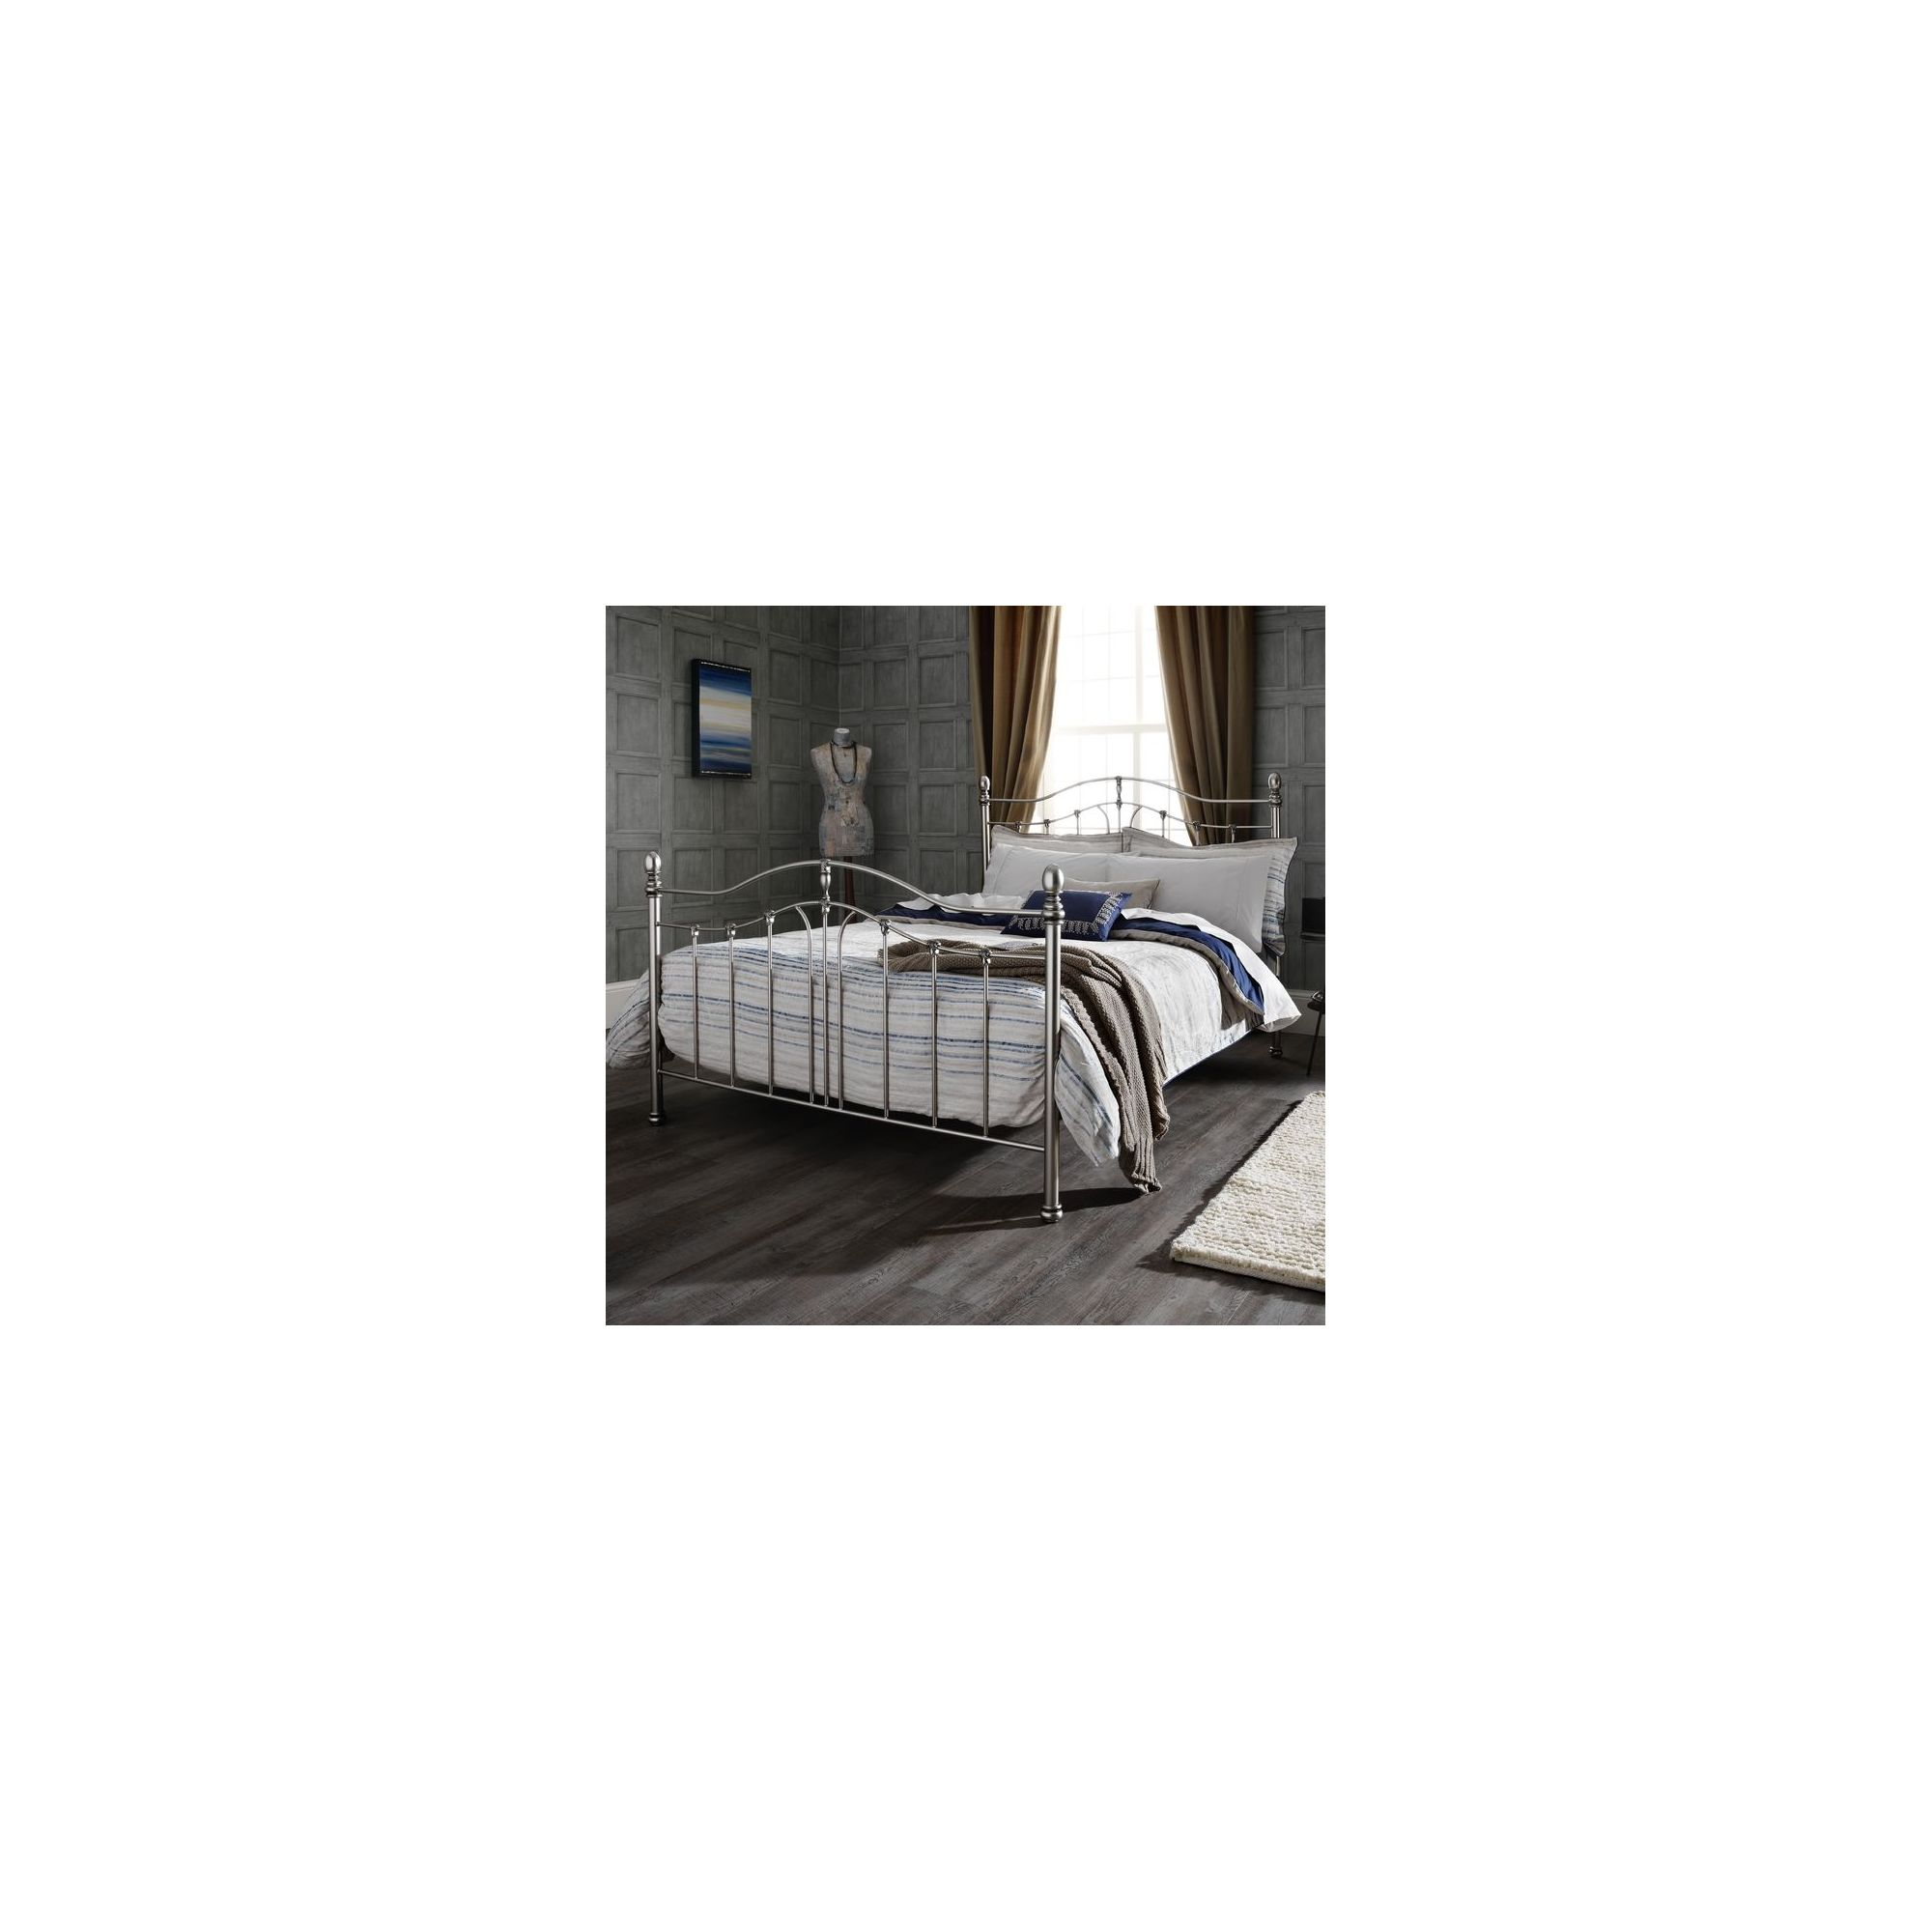 Serene Furnishings Camilla Bed Frame - King - Satin Nickel / Antique Black at Tesco Direct